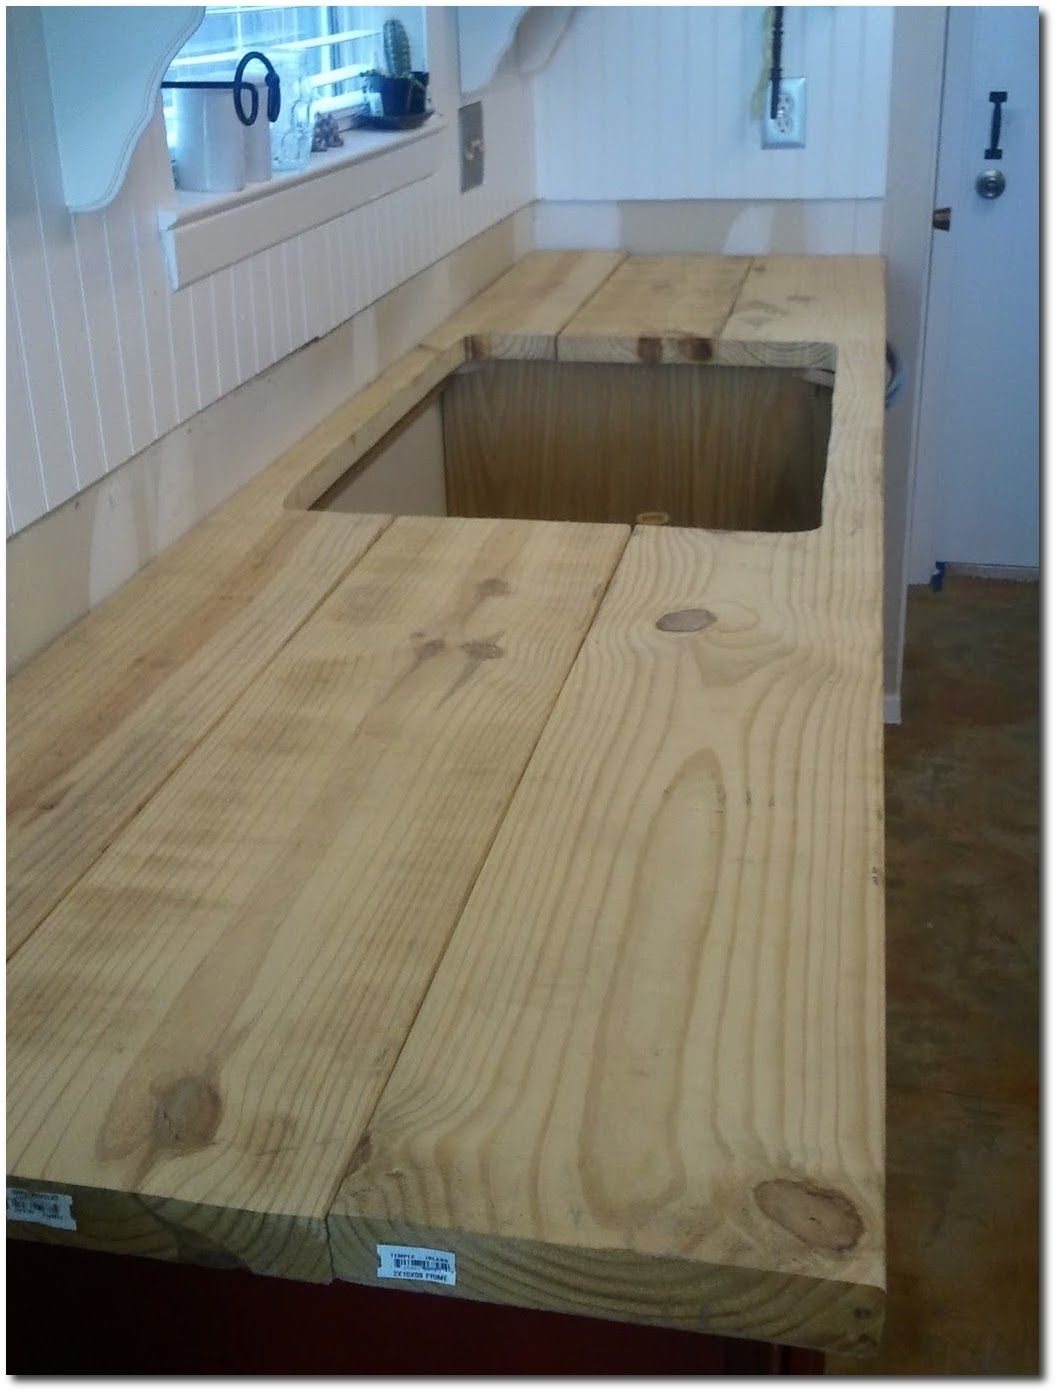 Pin by mat melton on inspiring ideas diy wood counters - Butcher block countertops in bathroom ...